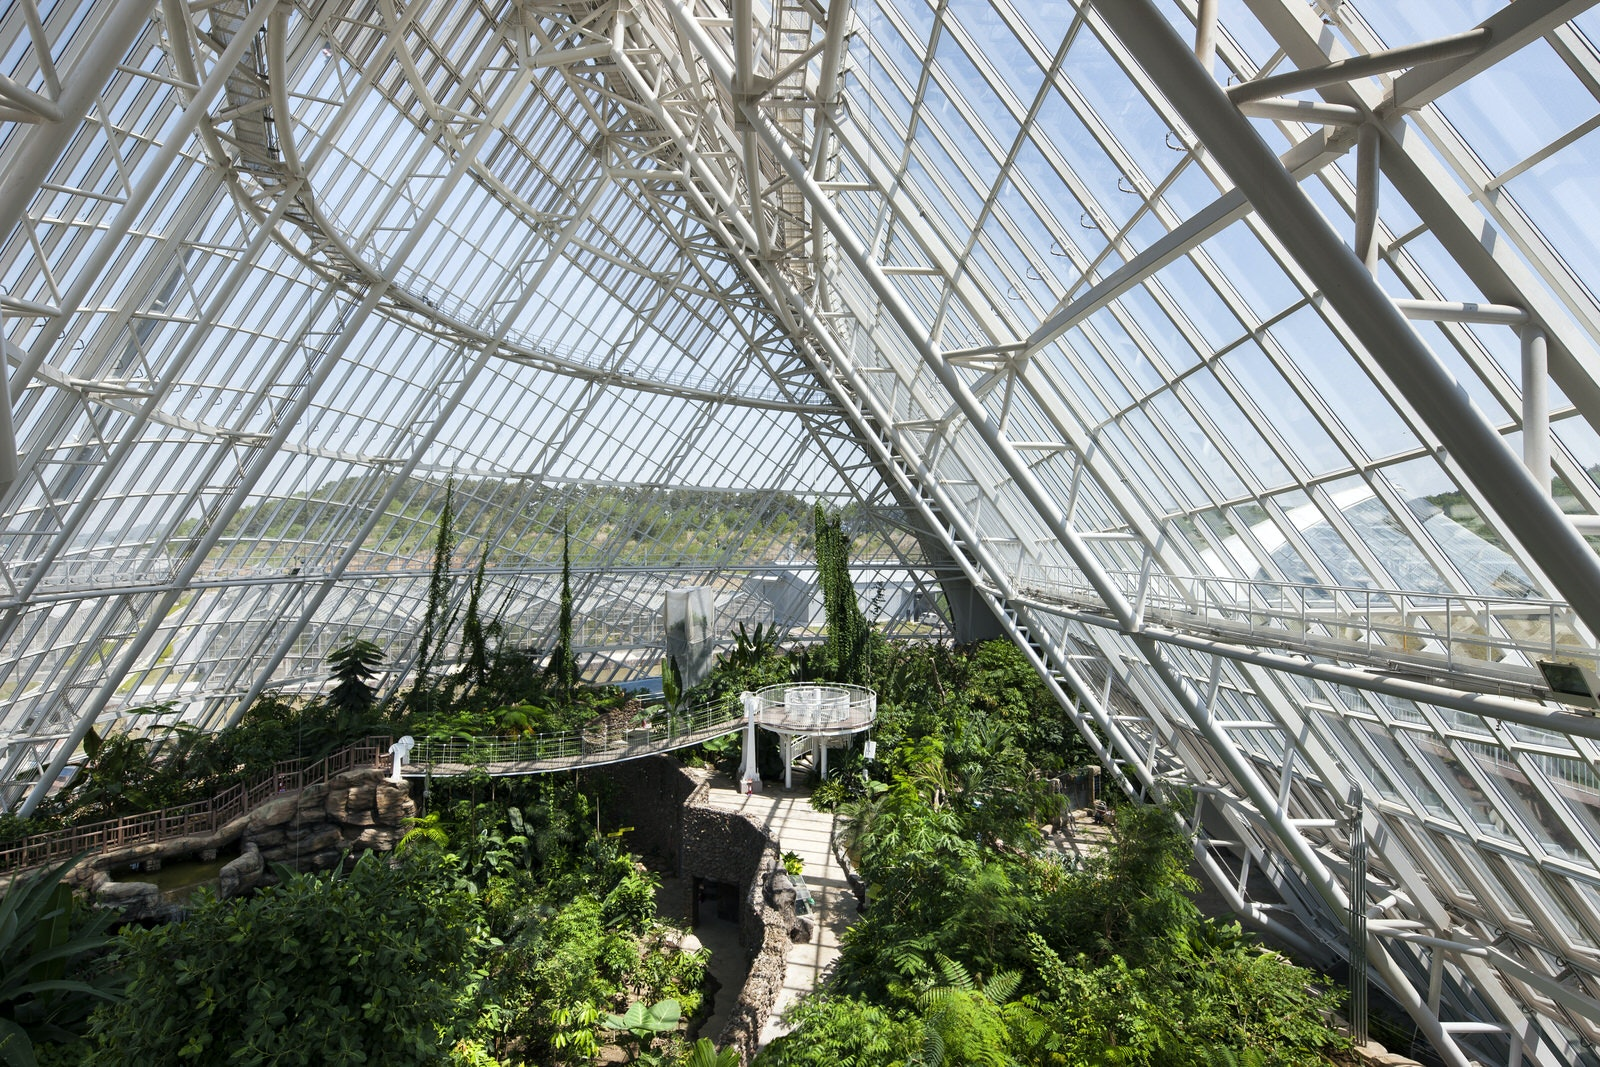 Grimshaw completes the nature-inspired Ecorium, their first project in Asia